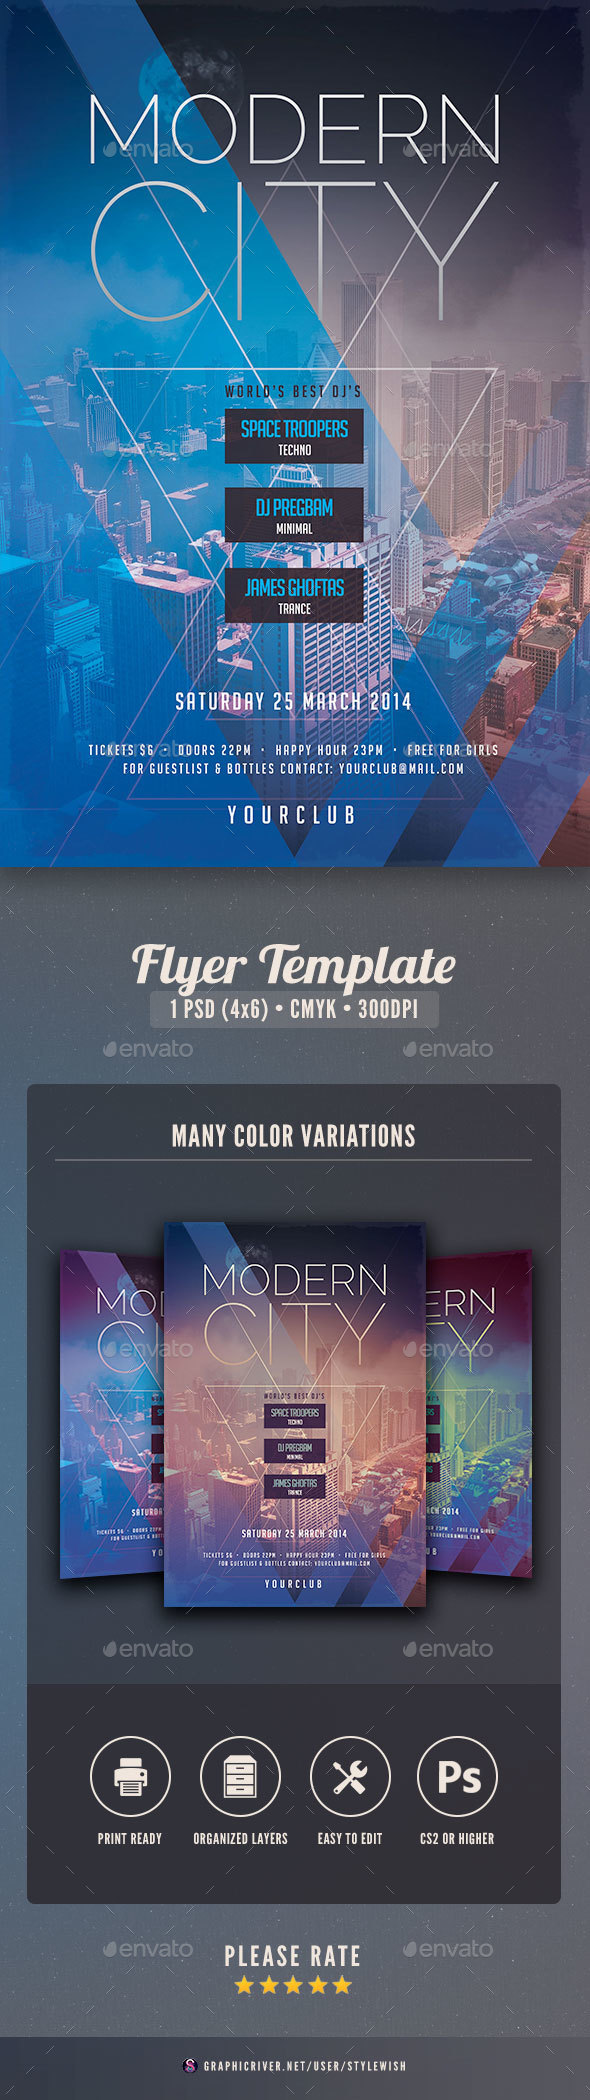 Modern City Flyer - Clubs & Parties Events